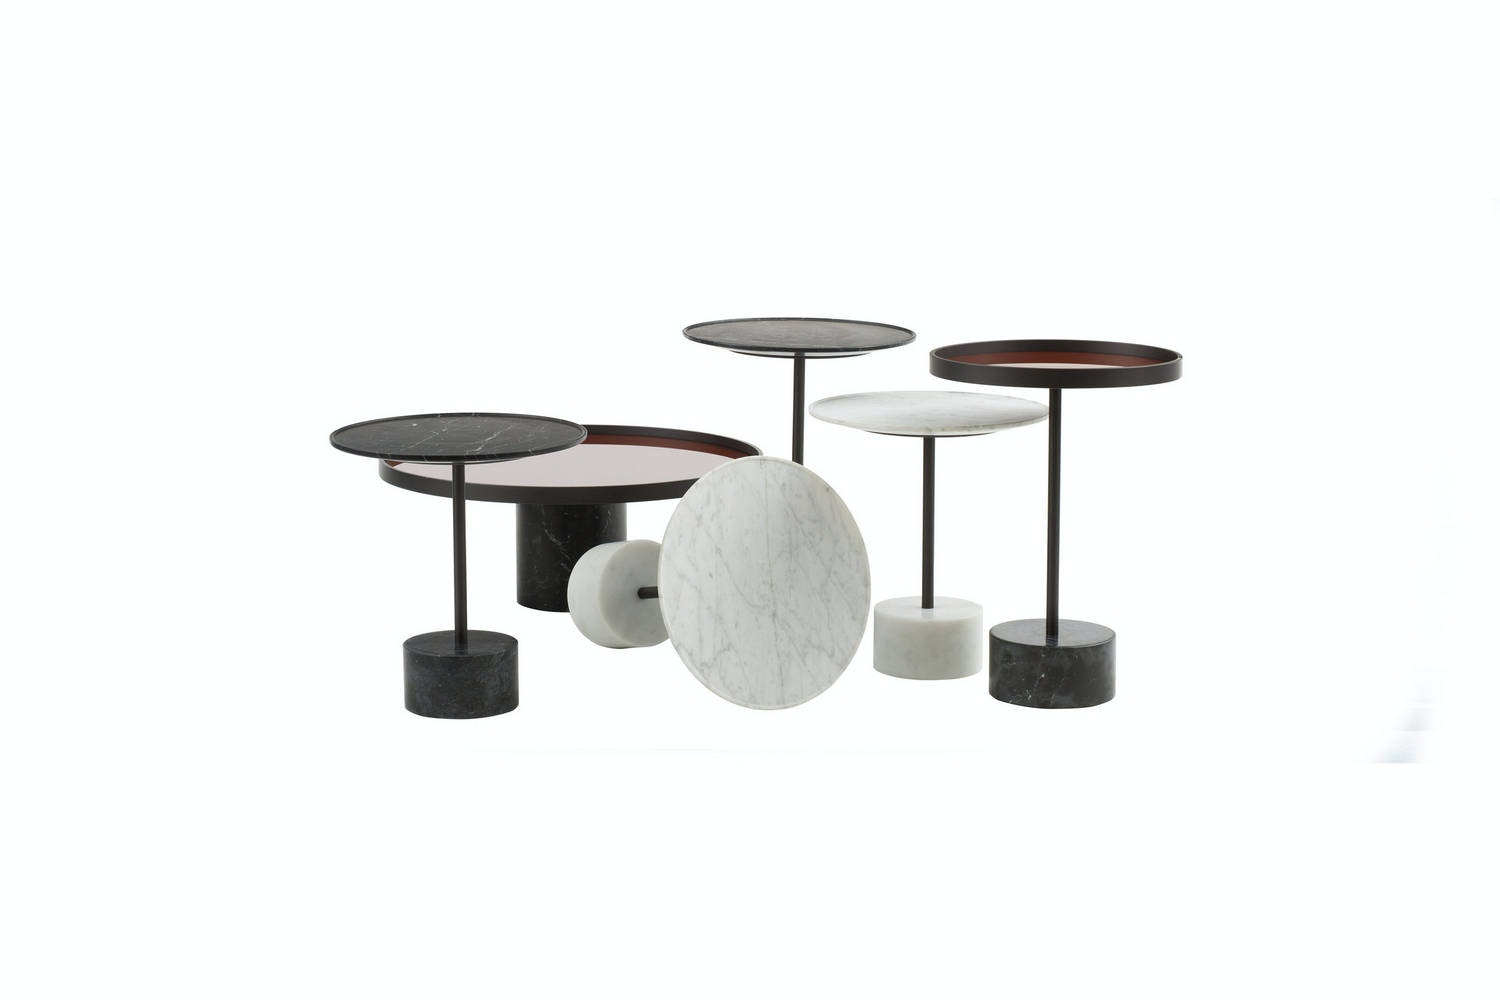 194 9 Coffee Table by Piero Lissoni for Cassina